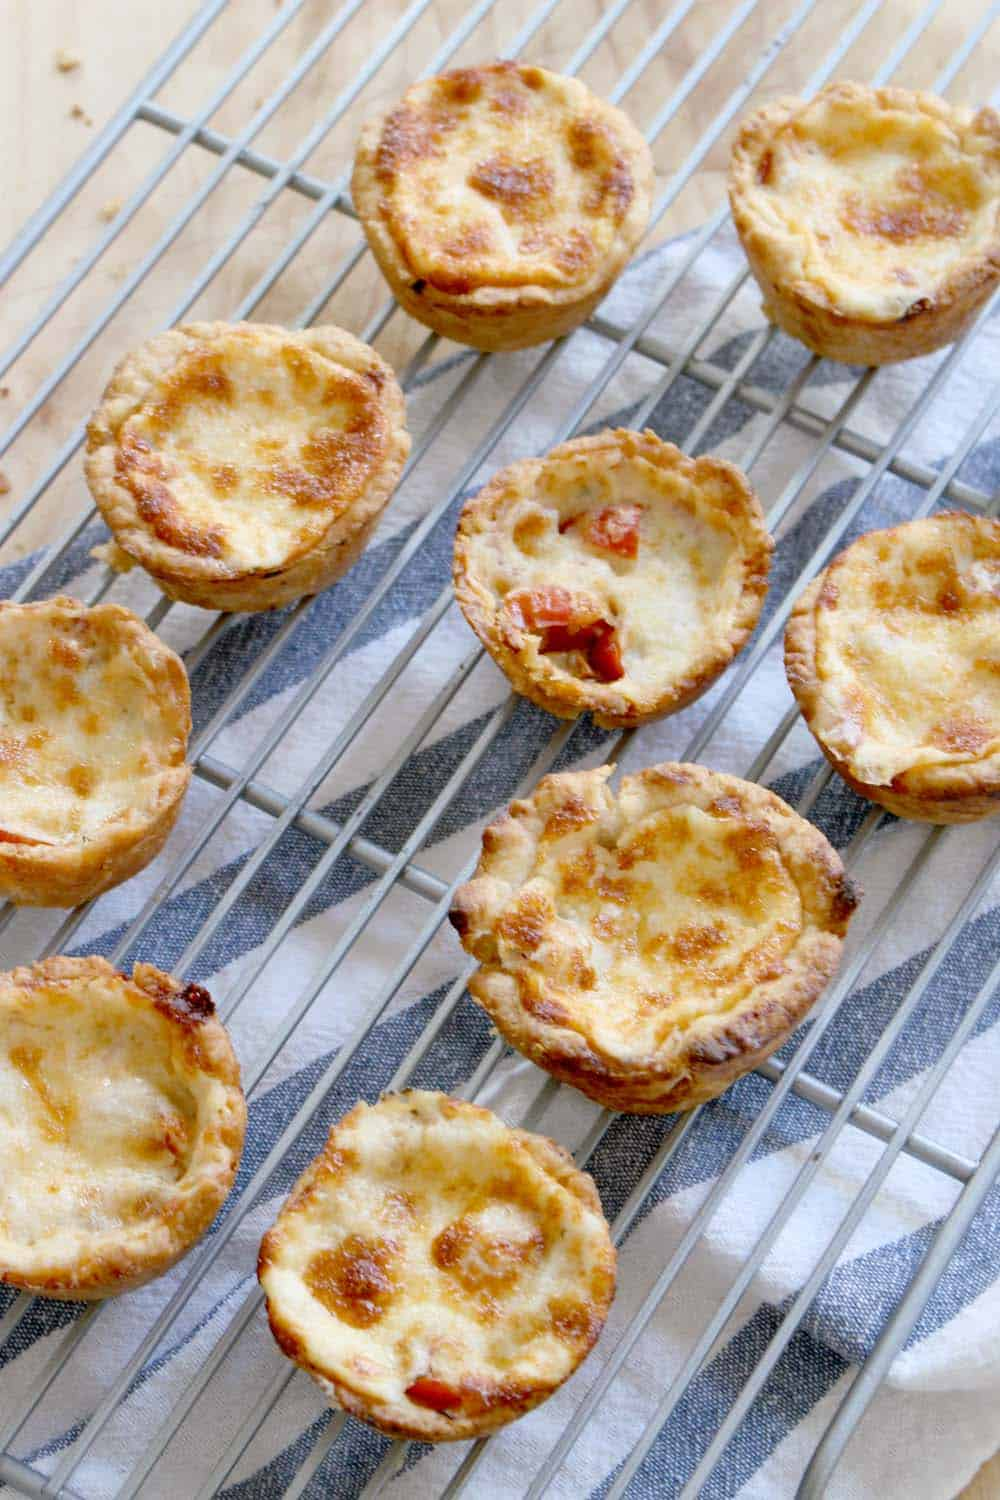 These mini tomato pies are rich and decadent, warm, and the ultimate comfort food. Perfect for lunch or dinner with a side salad, as a snack, or as an appetizer for a party! Can be individually frozen for a super convenient treat.